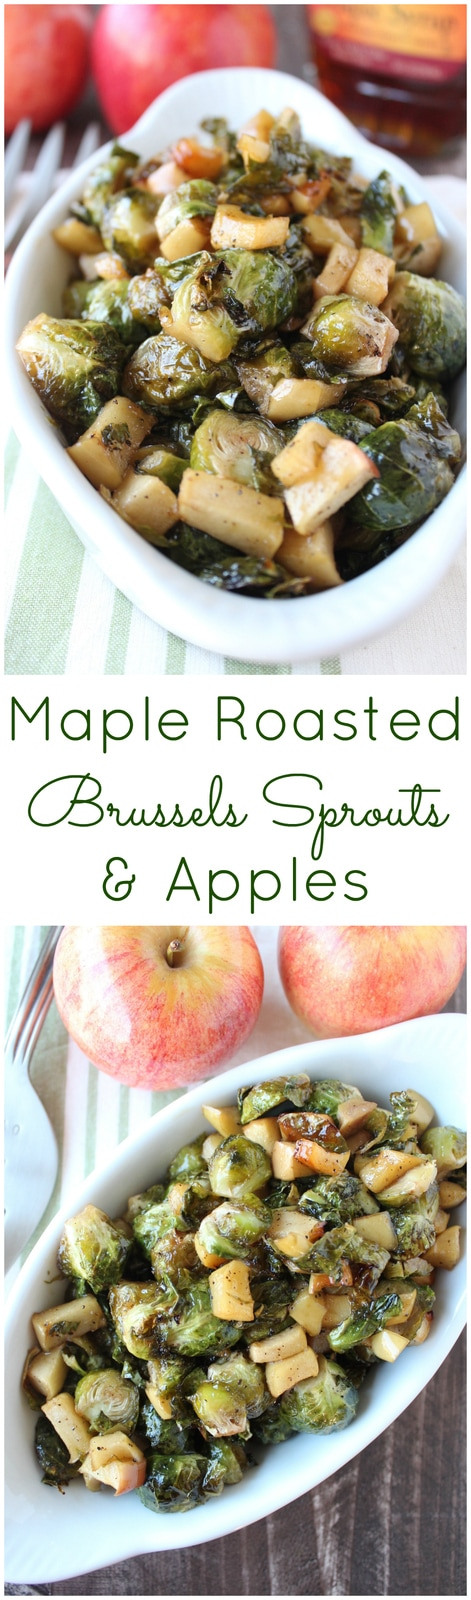 Maple Roasted Brussels Sprouts & Apples